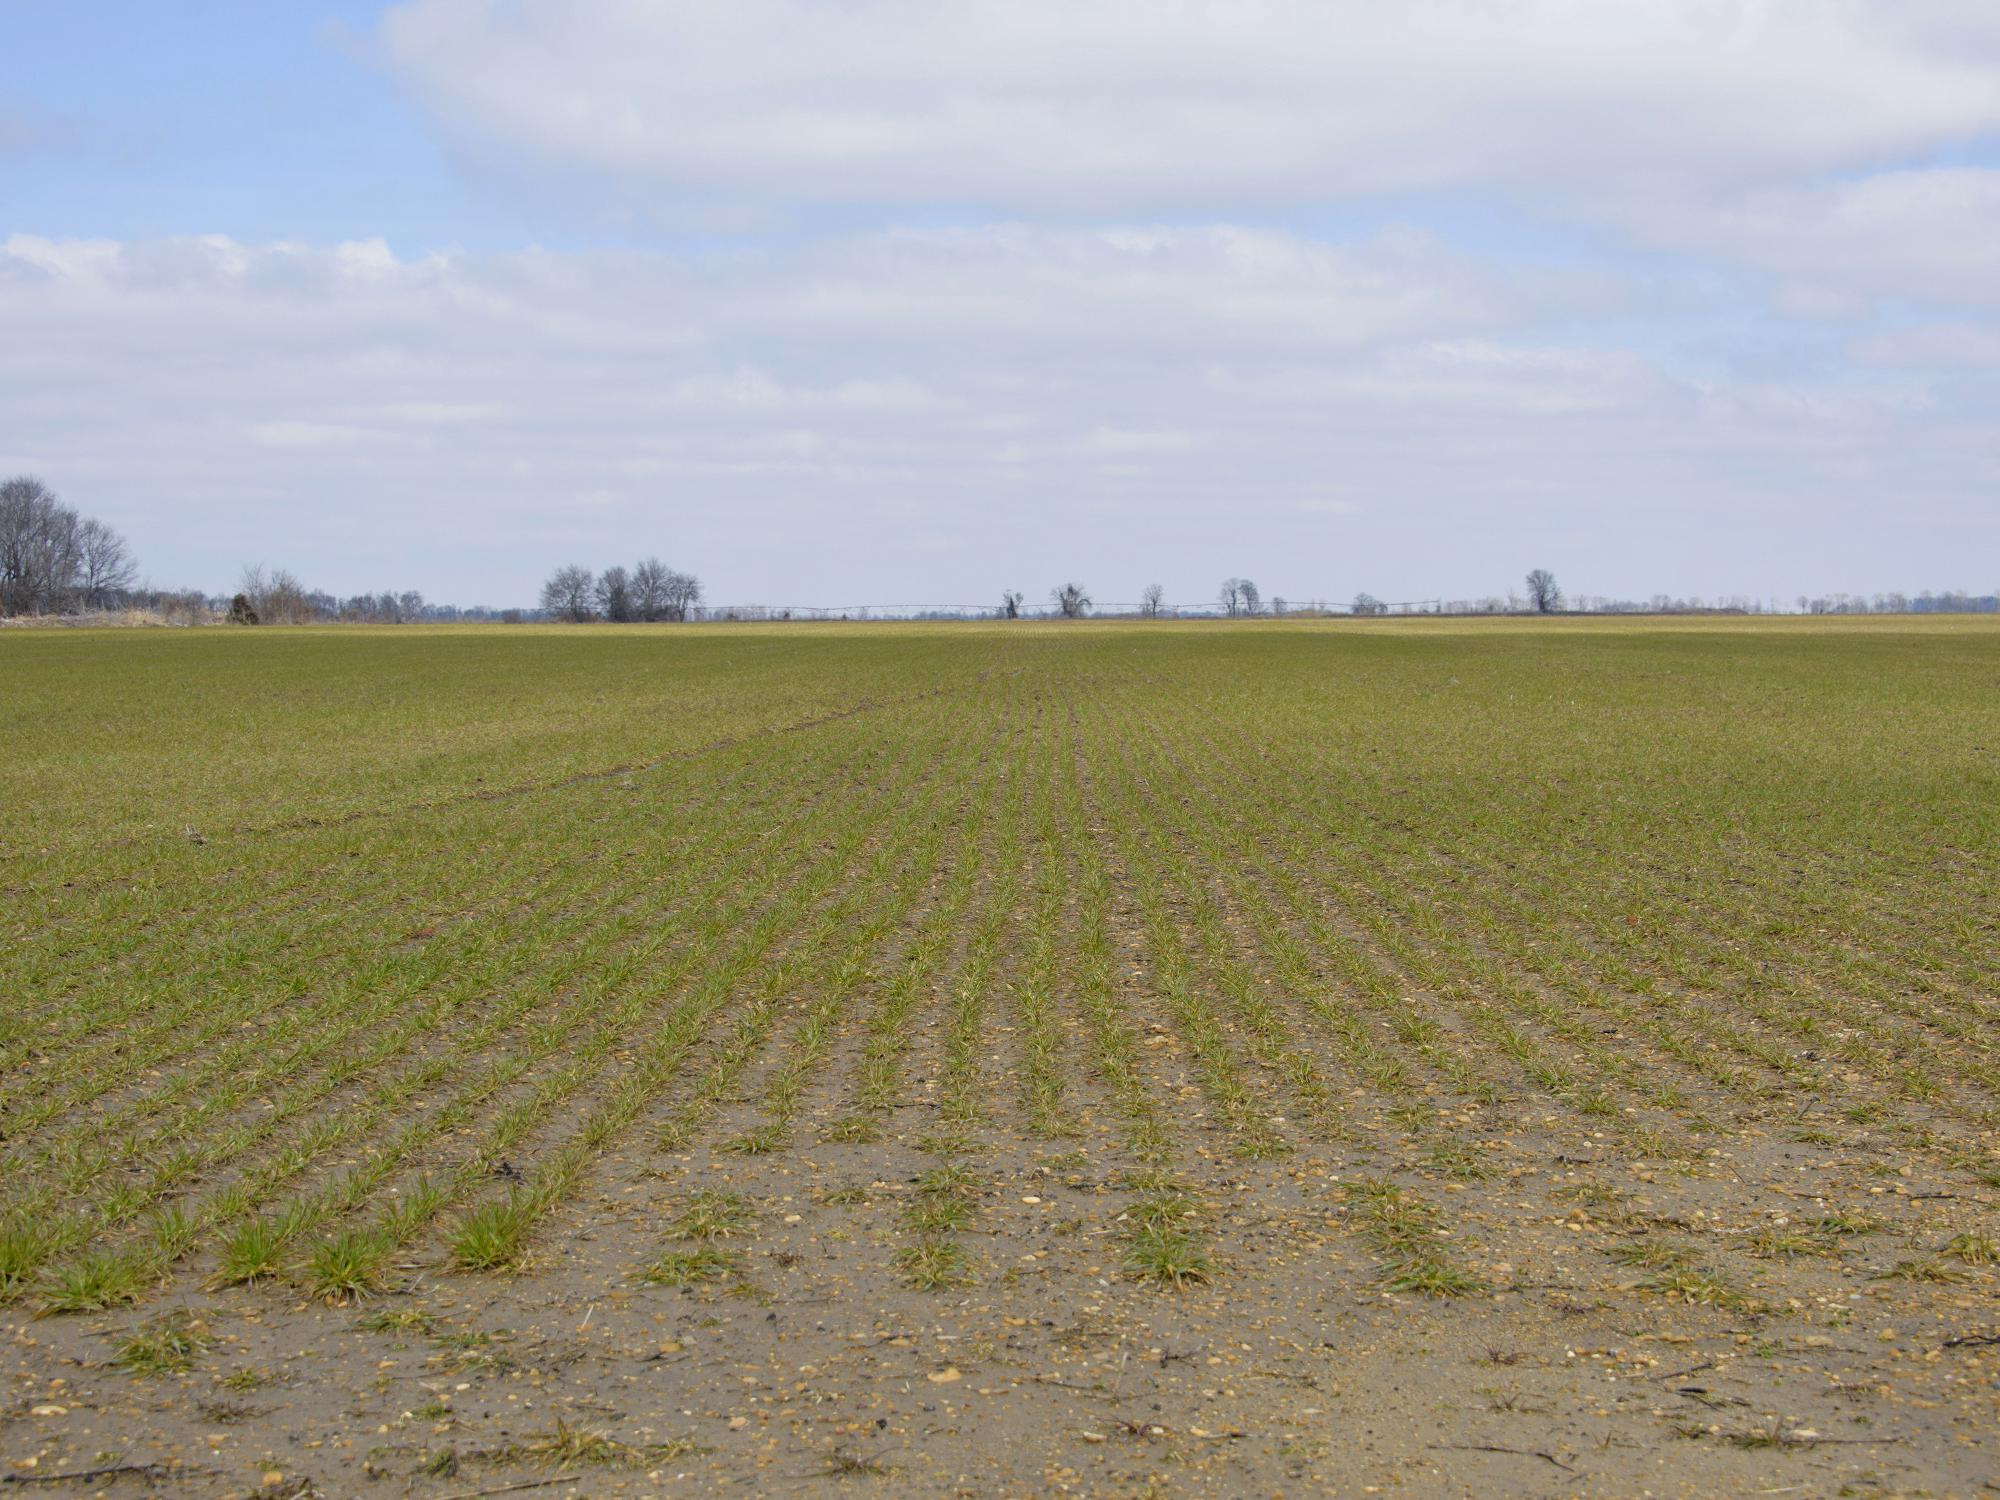 Saturated conditions complicated fertilizer application and delayed wheat across Mississippi. Stunted growth in low spots was visible in this Bolivar County wheat field on Feb. 27, 2015. (Photo by MSU Ag Communications/Kevin Hudson)